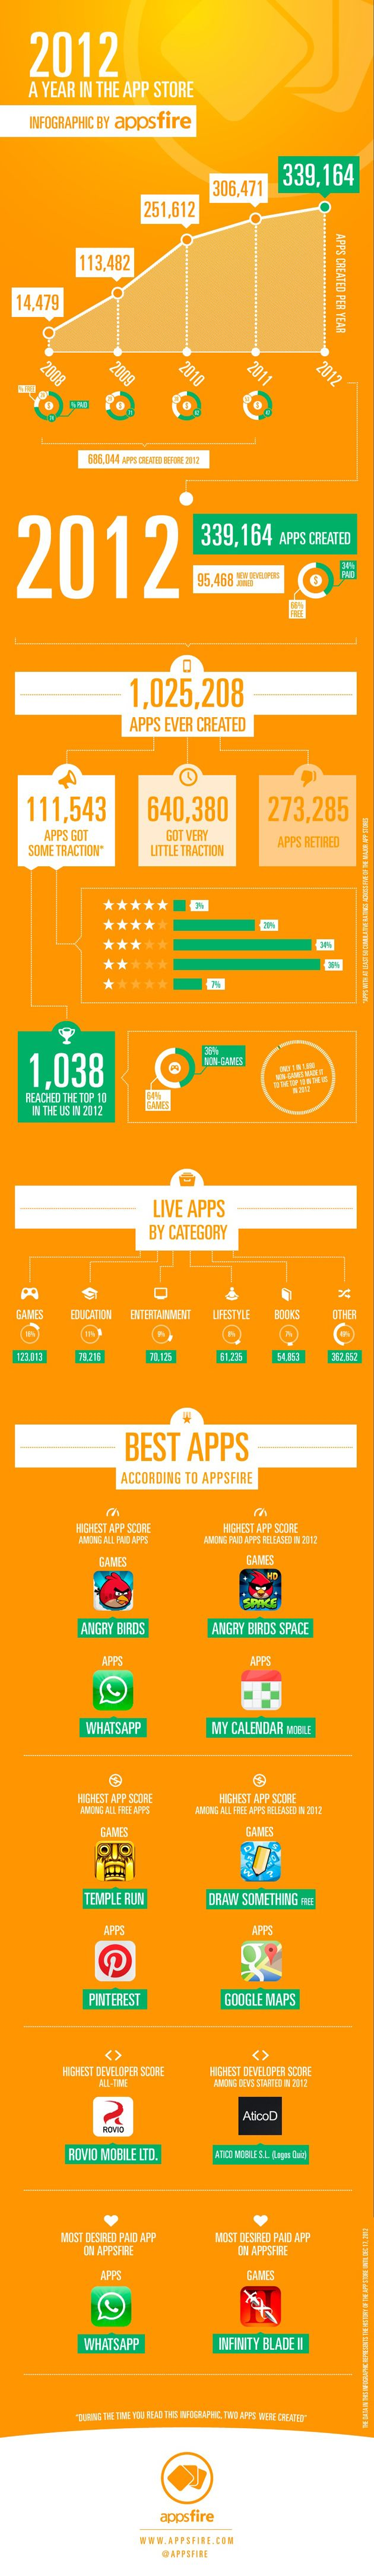 Infographic: Free Apps Dominated Apple's App Store in 2012